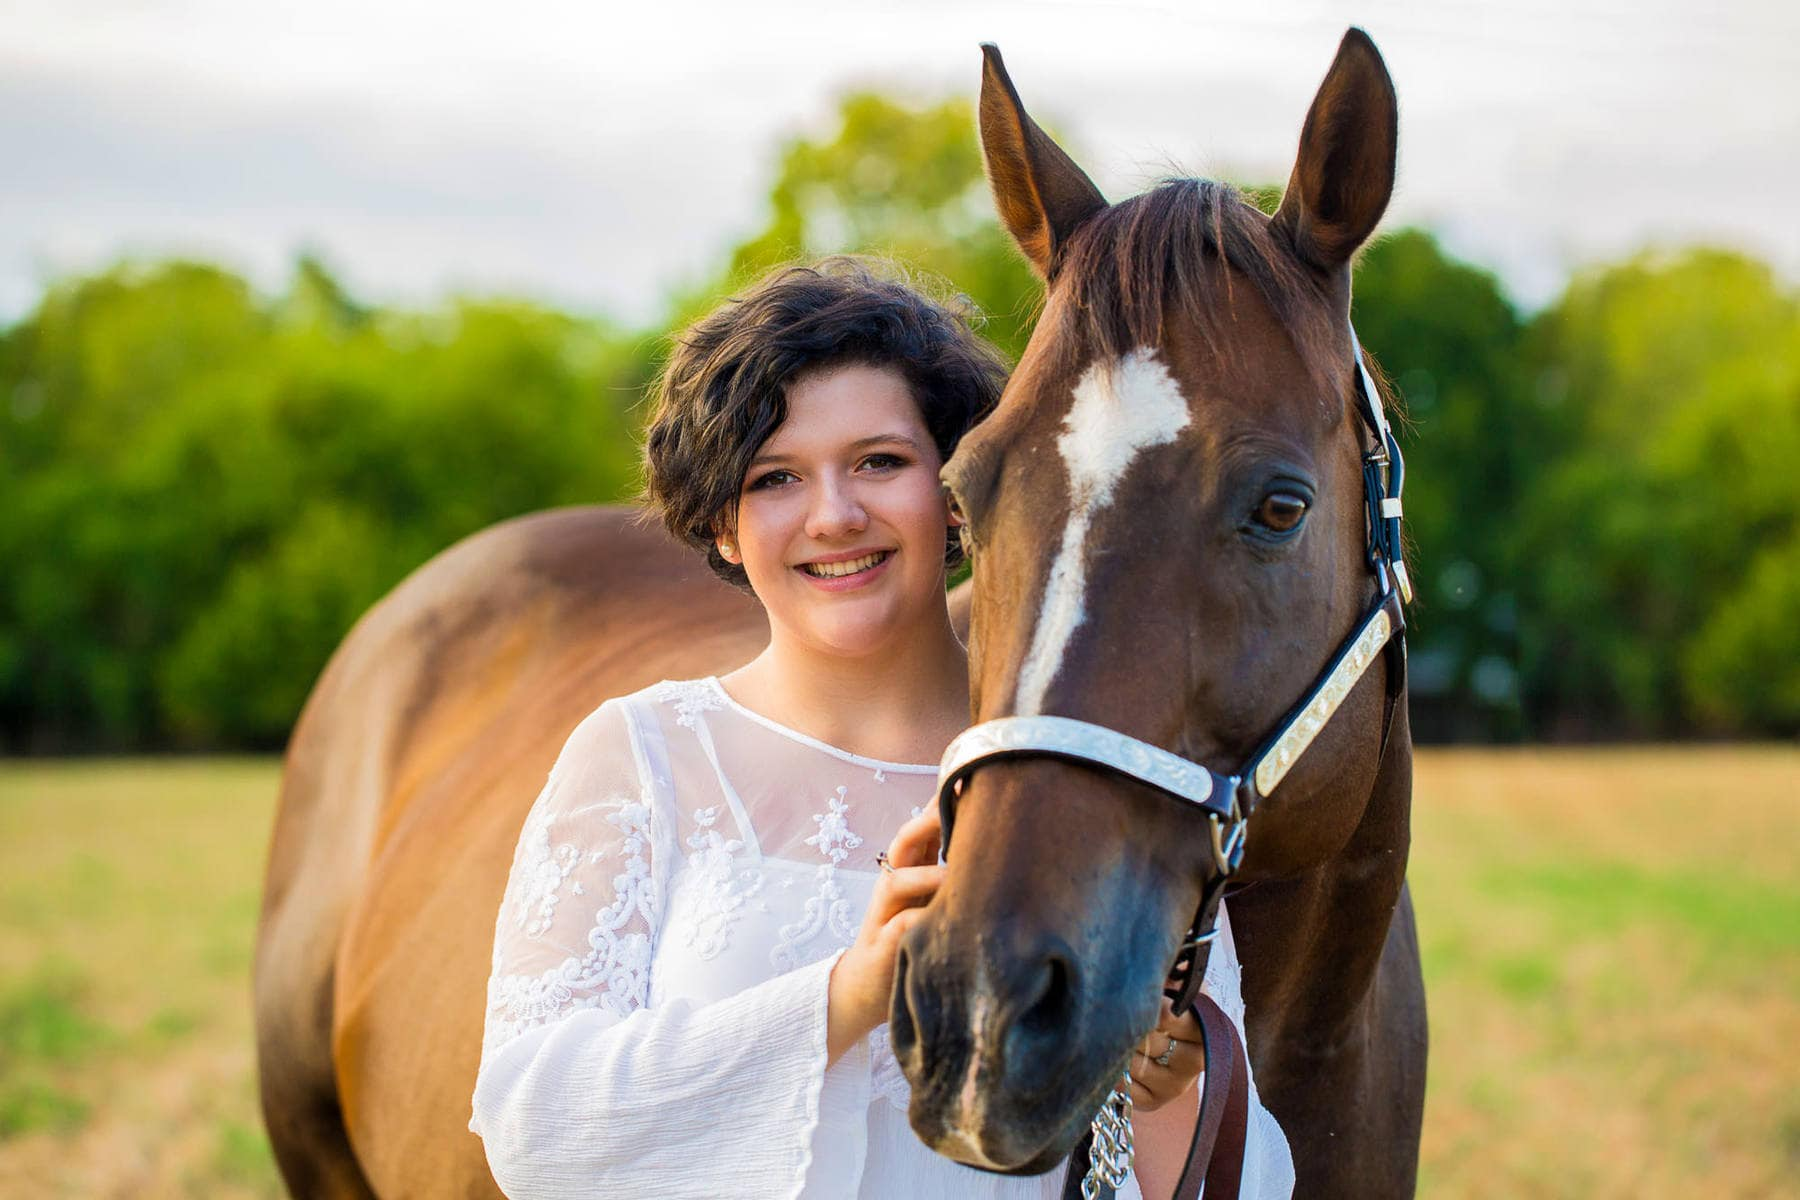 Senior Portraits with Chloe and horses in Thurmont Maryland with Photographer Kelly Heck